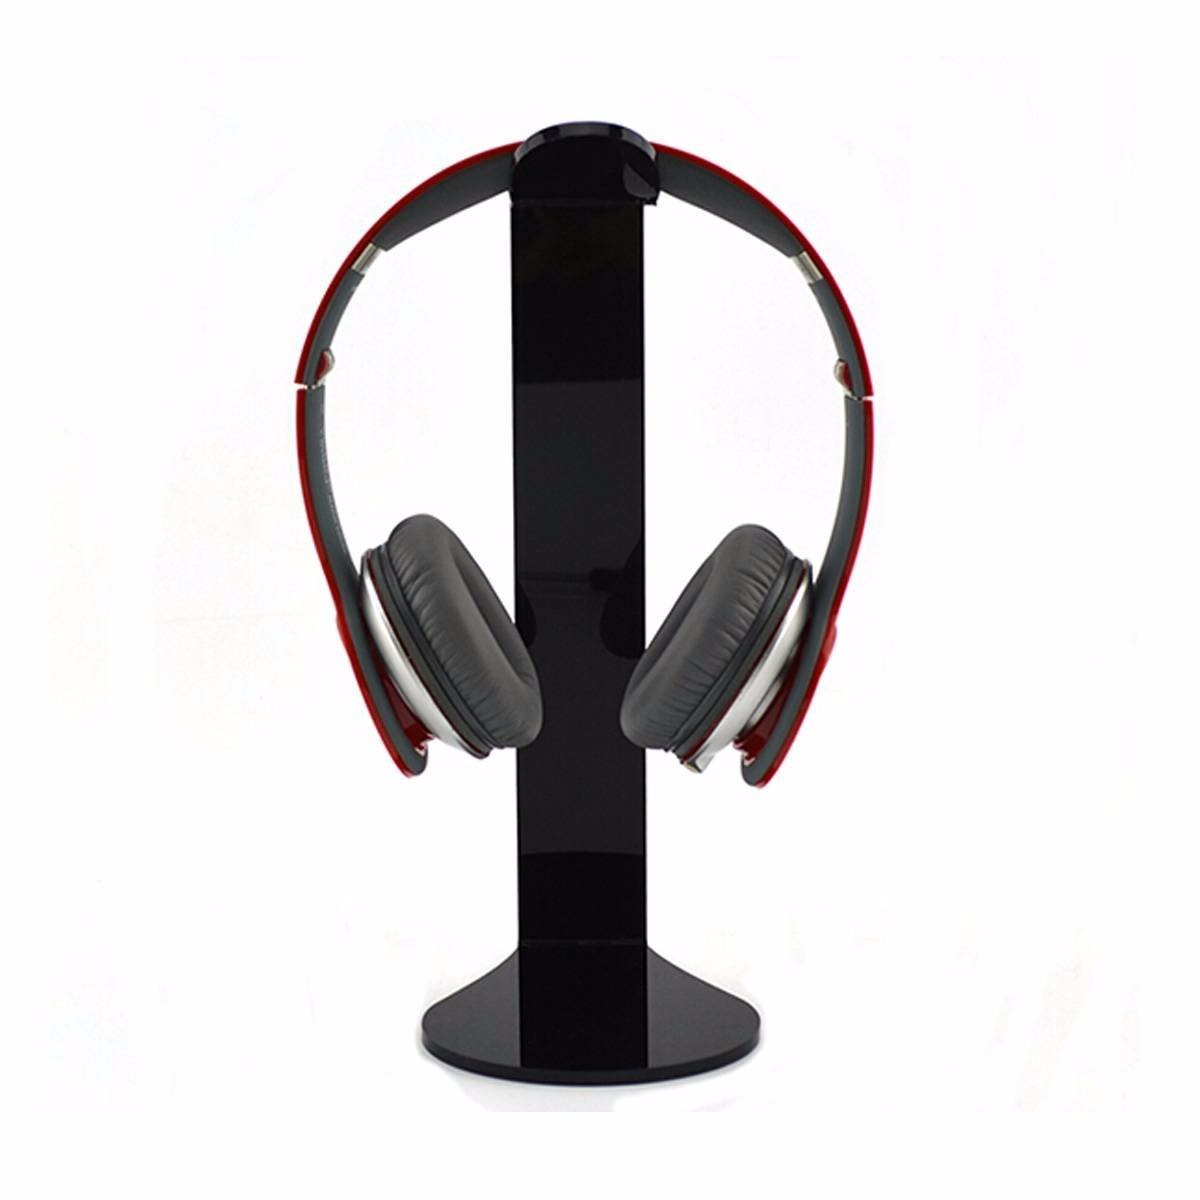 Universal Acrylic Headphone Stand Holder Earphone Headset Hanger Display Rack